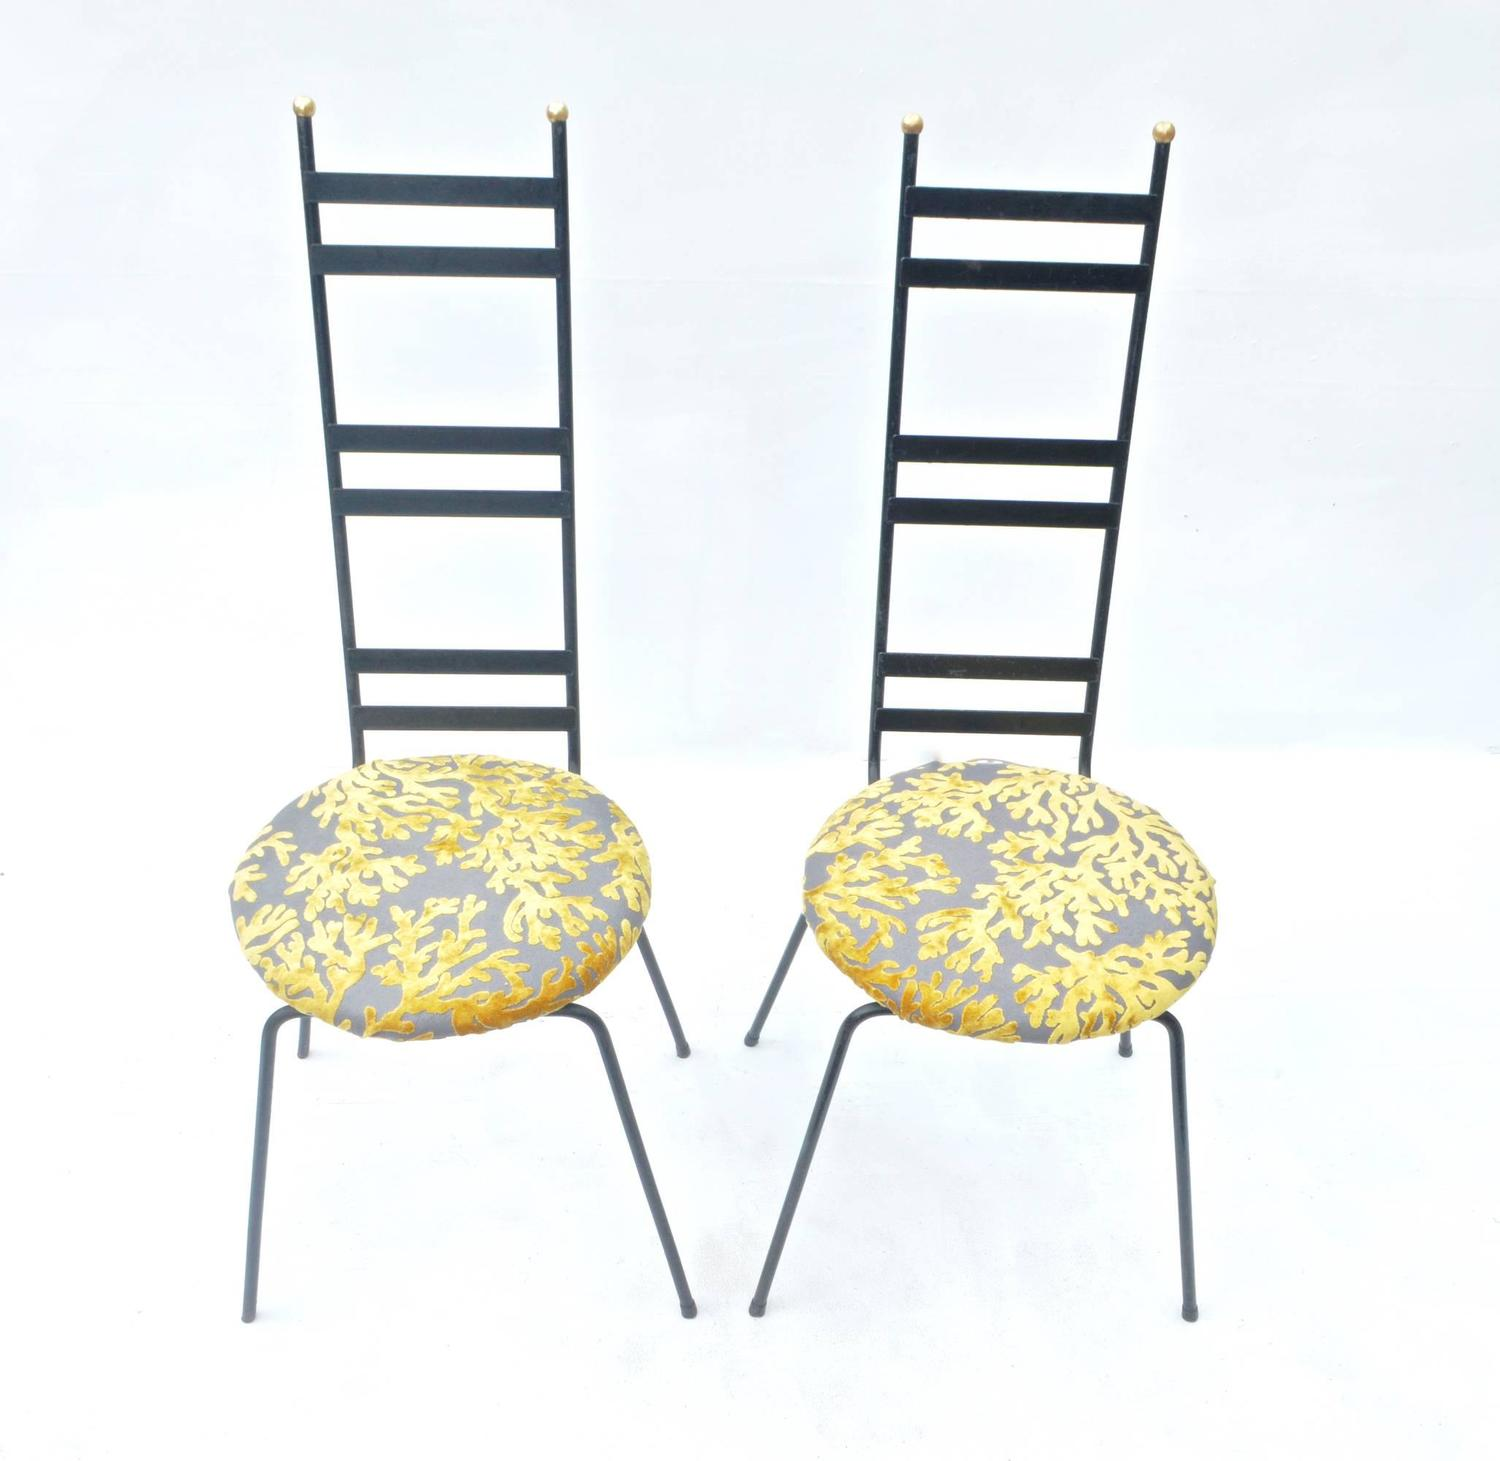 Tantalizing Pair of Tall Backed Garden Chairs For Sale at 1stdibs